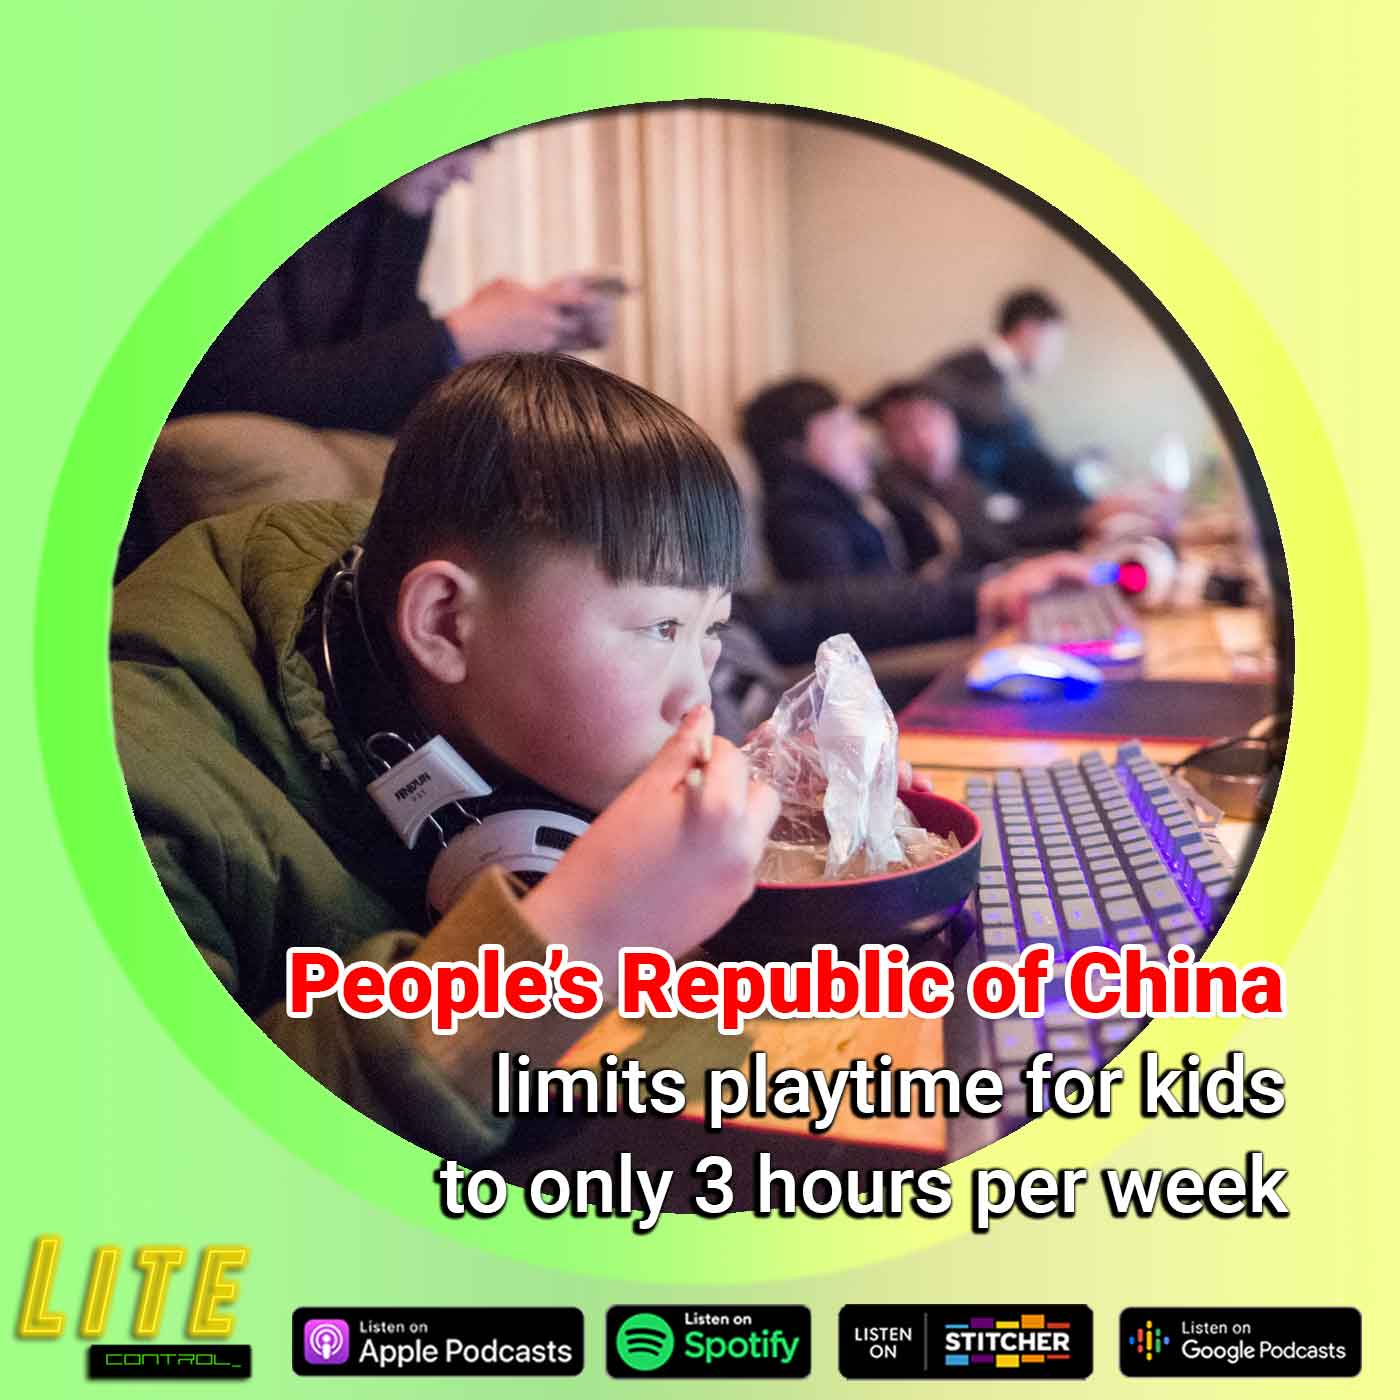 Lite Control 165 - China Limits Online Play for Kids to 3 Hours Per Week